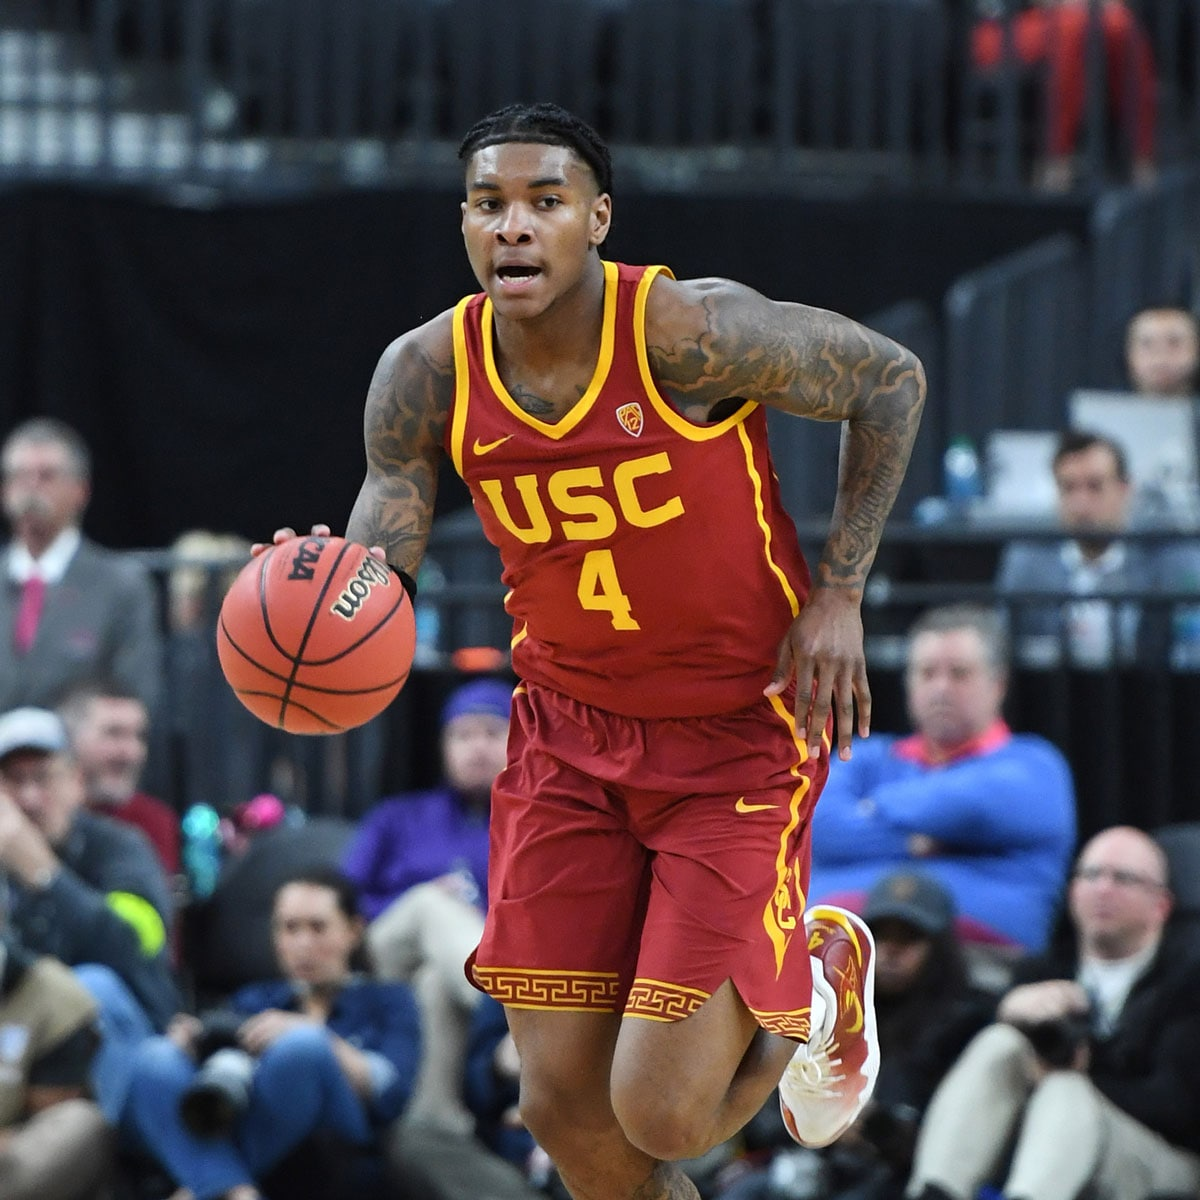 Kevin Porter Jr. #4 of the USC Trojans brings the ball up the court against the Washington Huskies during a quarterfinal game of the Pac-12 basketball tournament at T-Mobile Arena on March 14, 2019 in Las Vegas, Nevada. The Huskies defeated the Trojans 78-75.